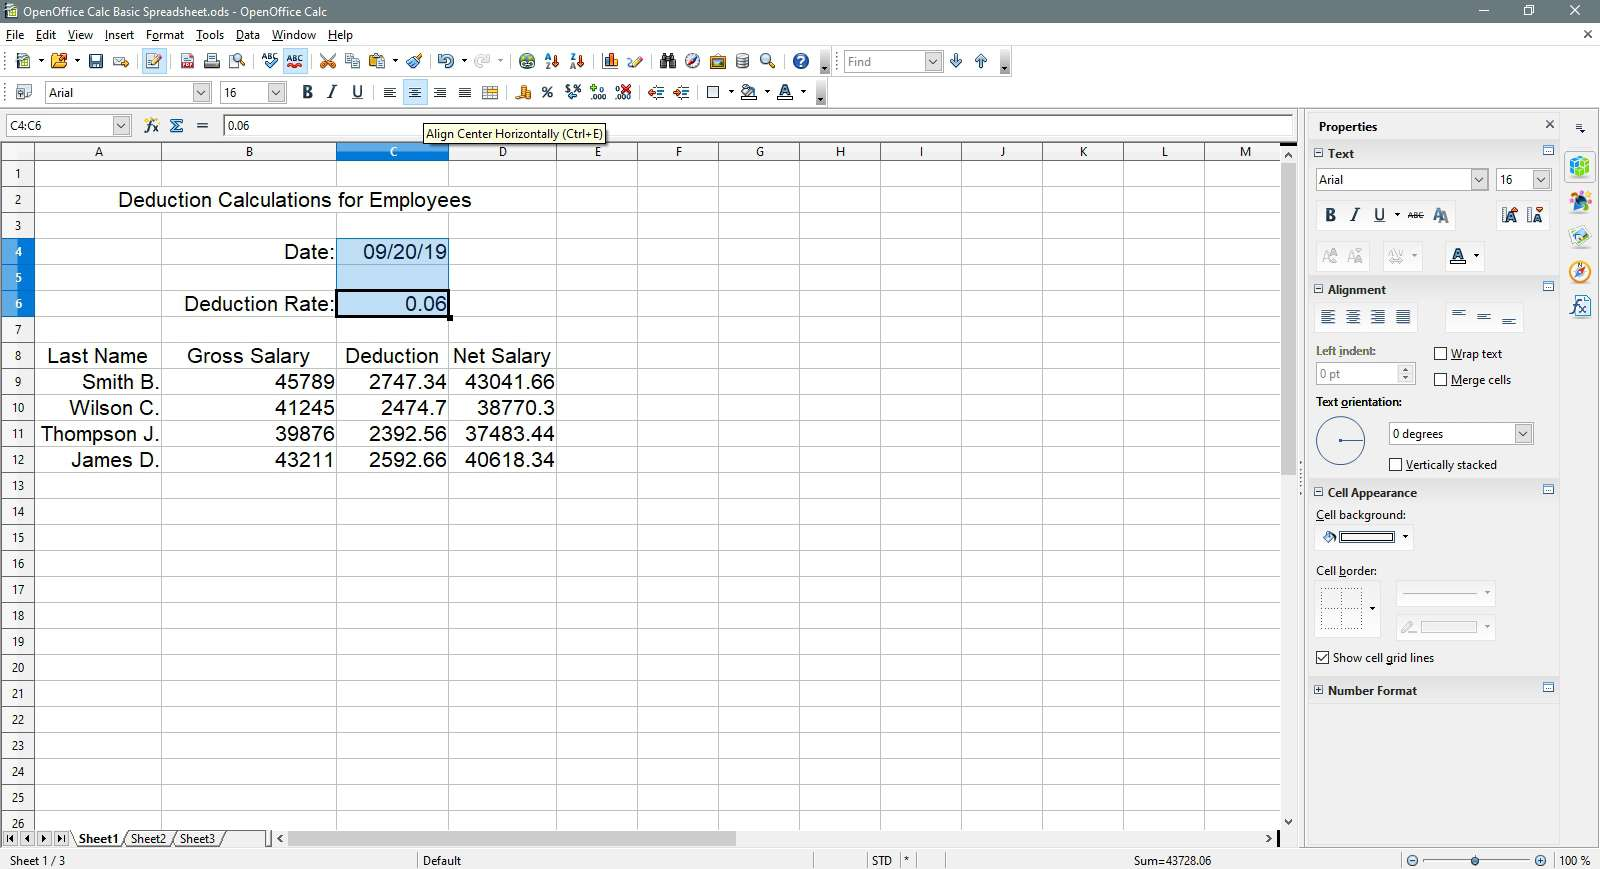 Aligning the cells centered horizontally in OpenOffice Calc.